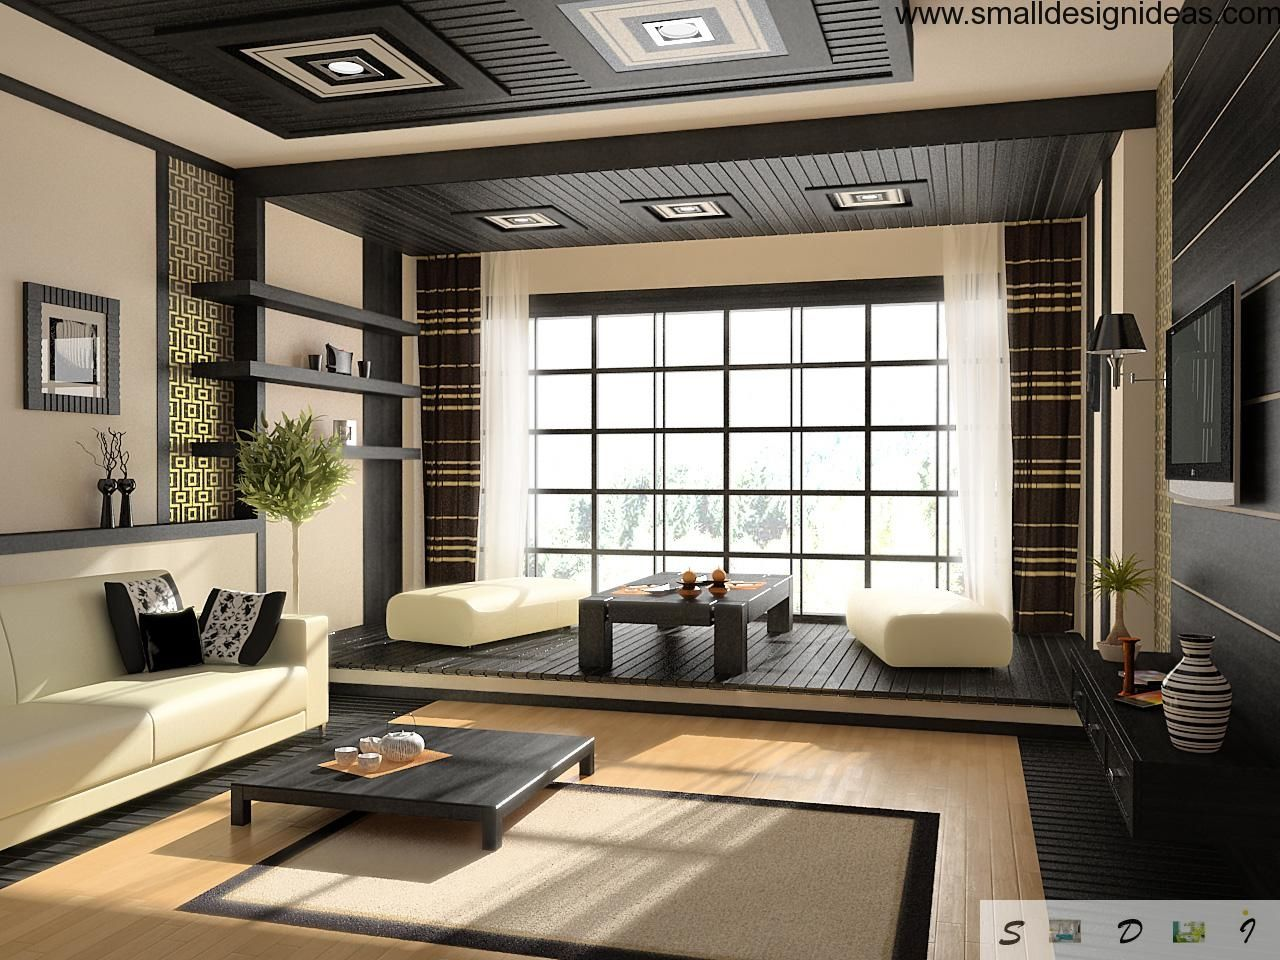 Amazing Interior Design Endearing 10 Things To Know Before Remodeling Your Interior Into Japanese Inspiration Design